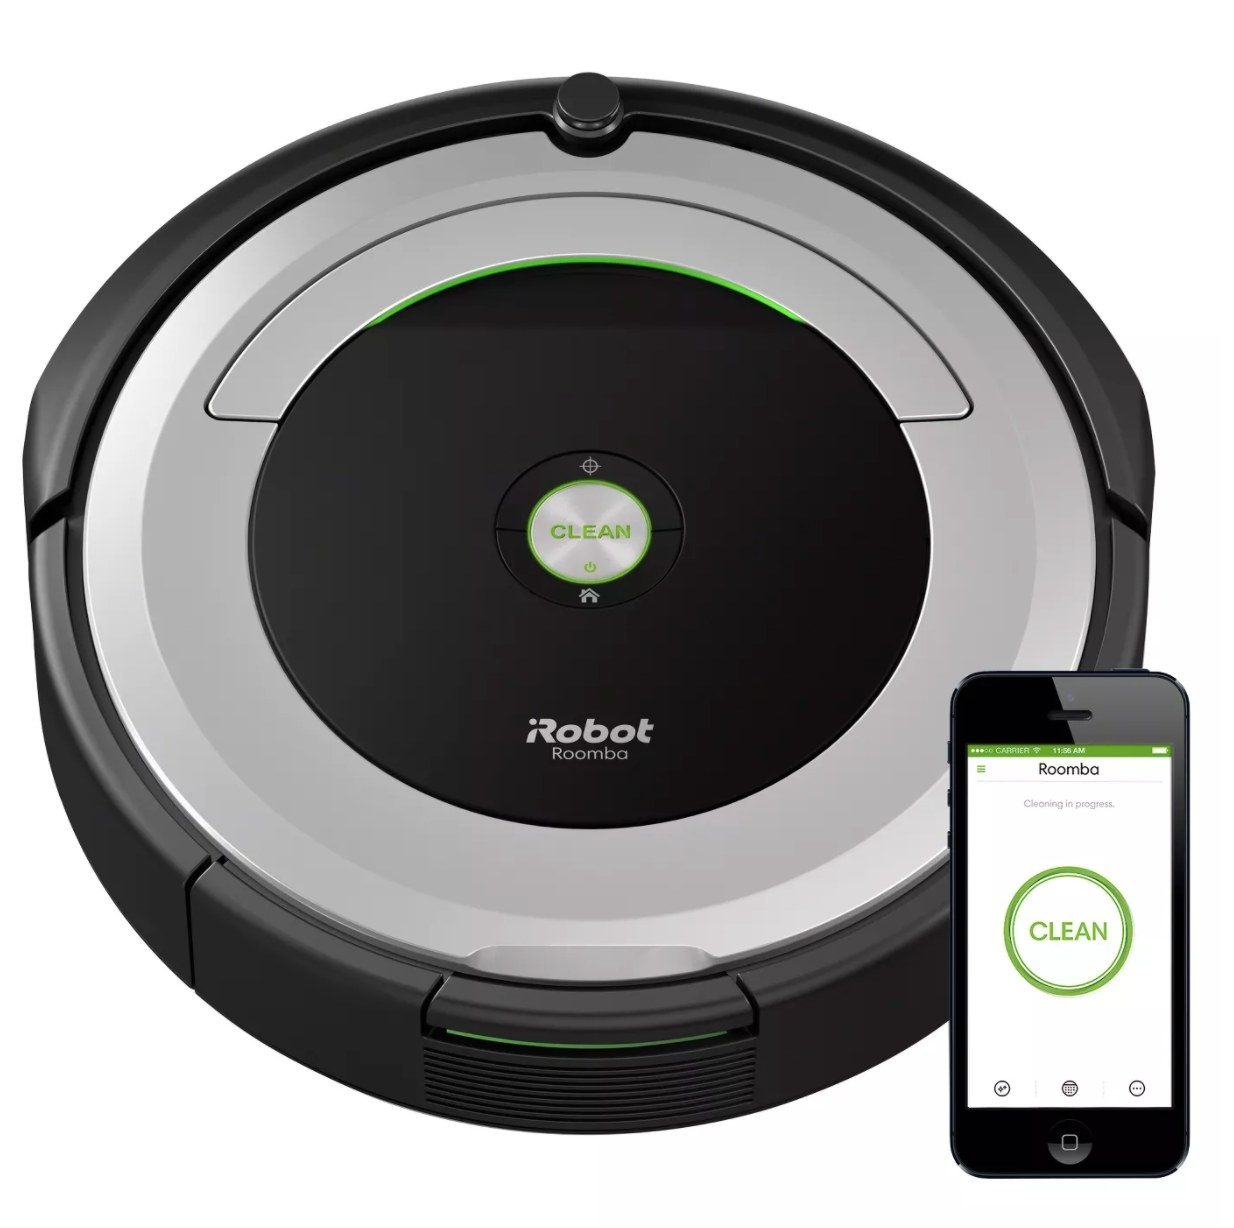 A black and silver round iRobot Roomba with app